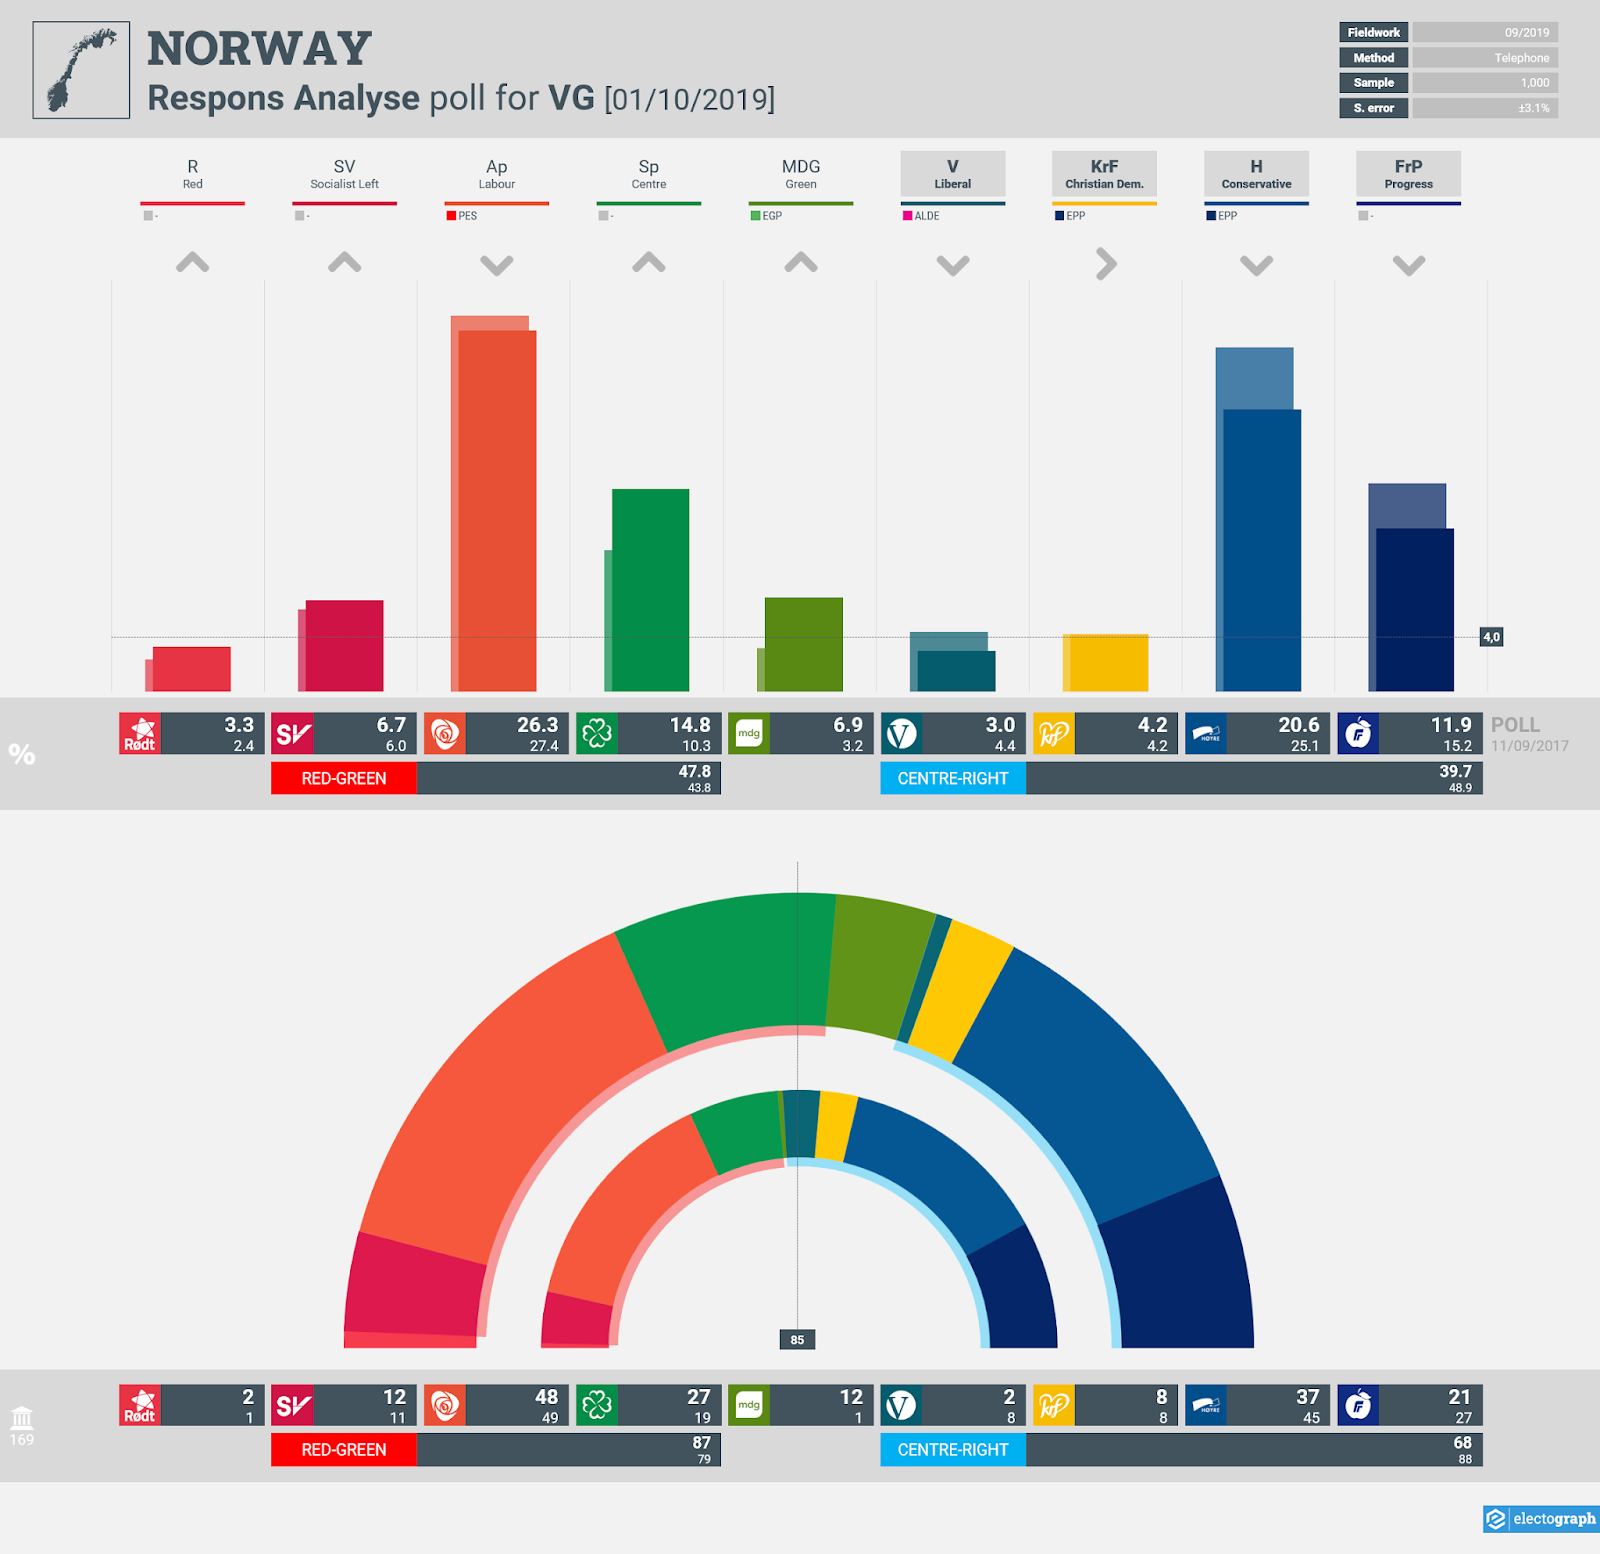 NORWAY: Respons poll chart for VG, 1 October 2019